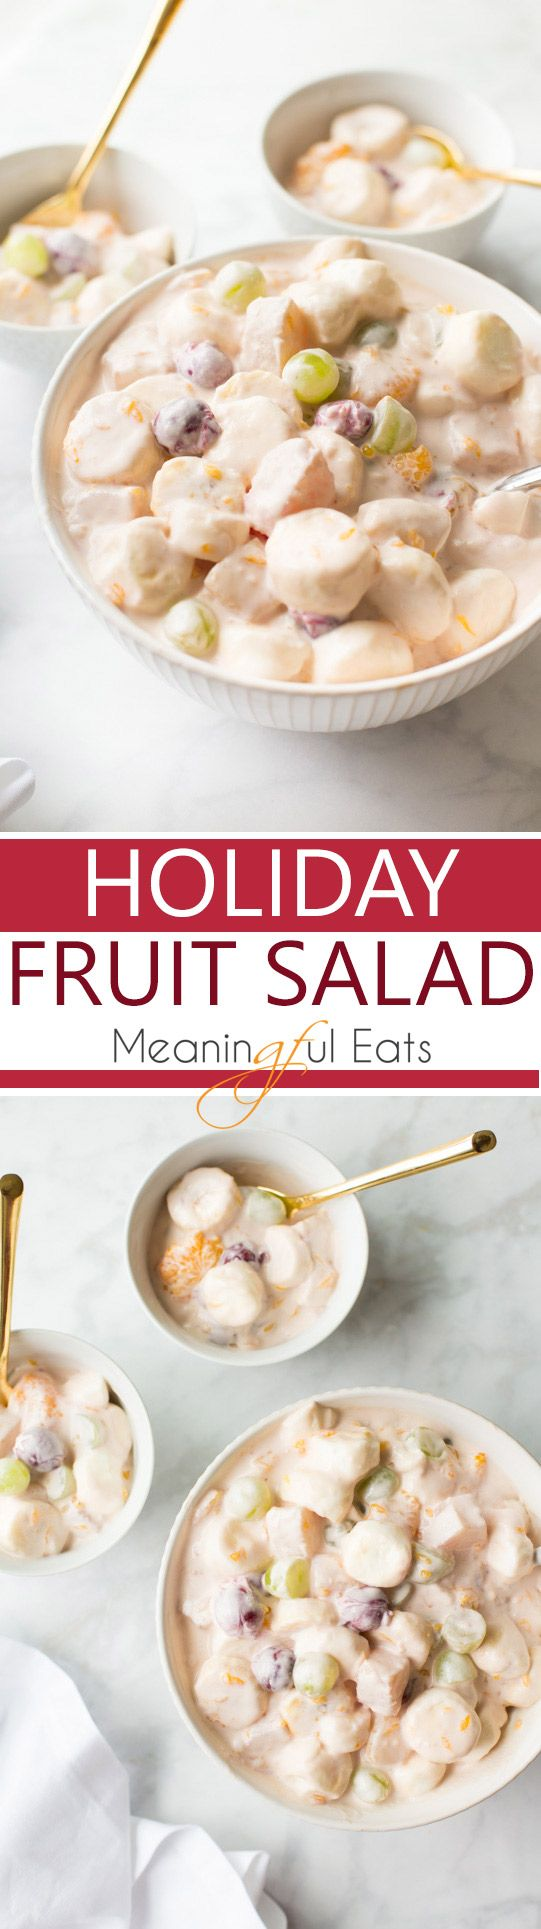 Thanksgiving. Christmas. Easter. Summer BBQs. This Holiday Fruit Salad is the perfect special occasion side for them all! Creamy, fluffy and crowd-pleasing!  This post was created in partnership with Dole Packaged Foods.   To me Thanksgiving is all about the sides and the side line-up wouldn't be complete without a creamy, fruit salad. This Holiday …